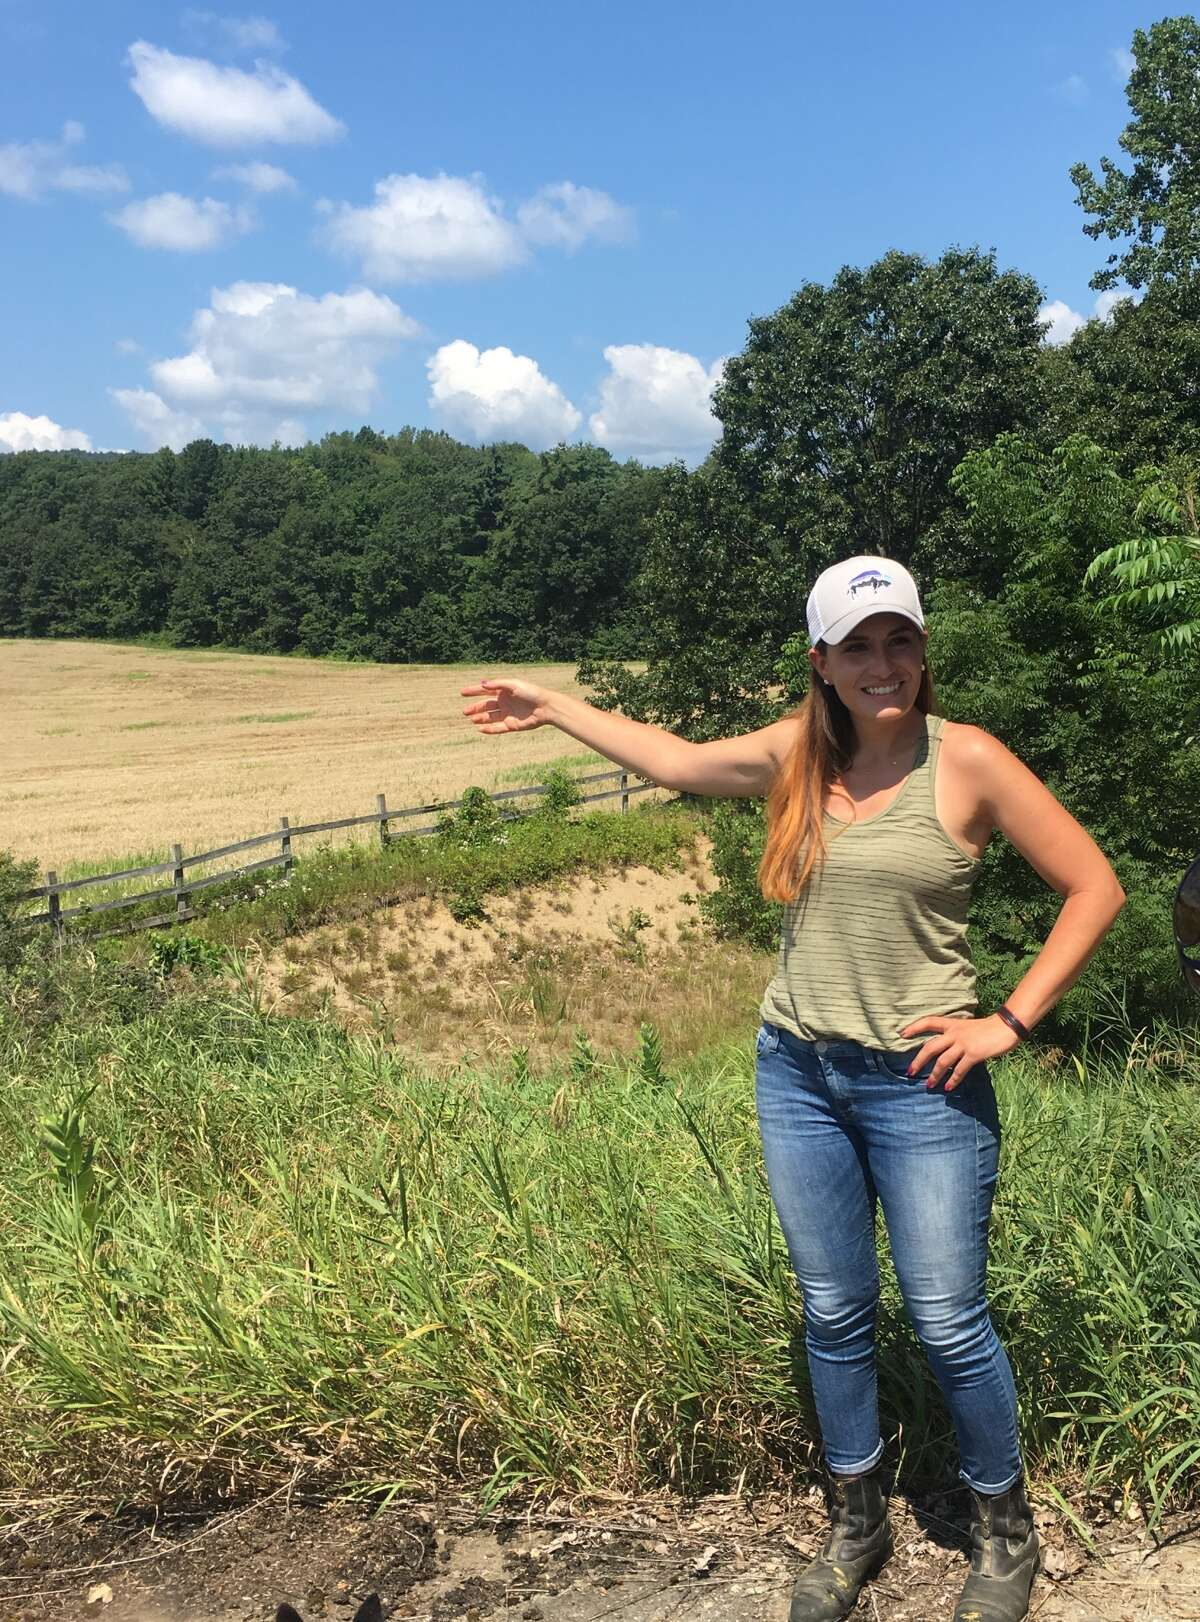 Rachel Czub, 31, points to the future site of a grain hub she hopes to build in Moreau. (Courtesy of Rachel Czub)